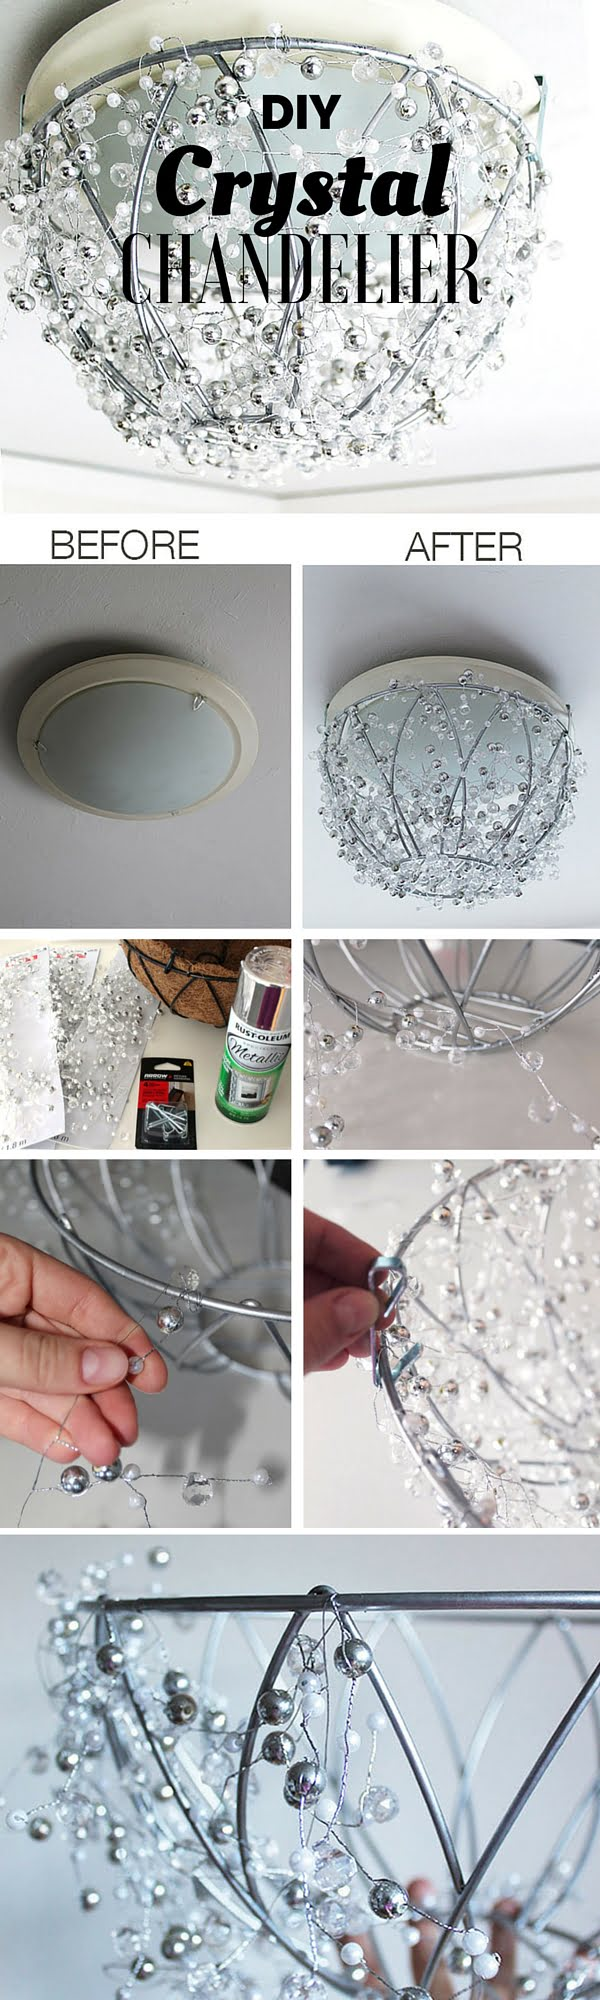 15 Easy and Brilliant DIY Home Decor Crafts on a Budget - Check out the tutorial: #DIY Crystal Chandelier